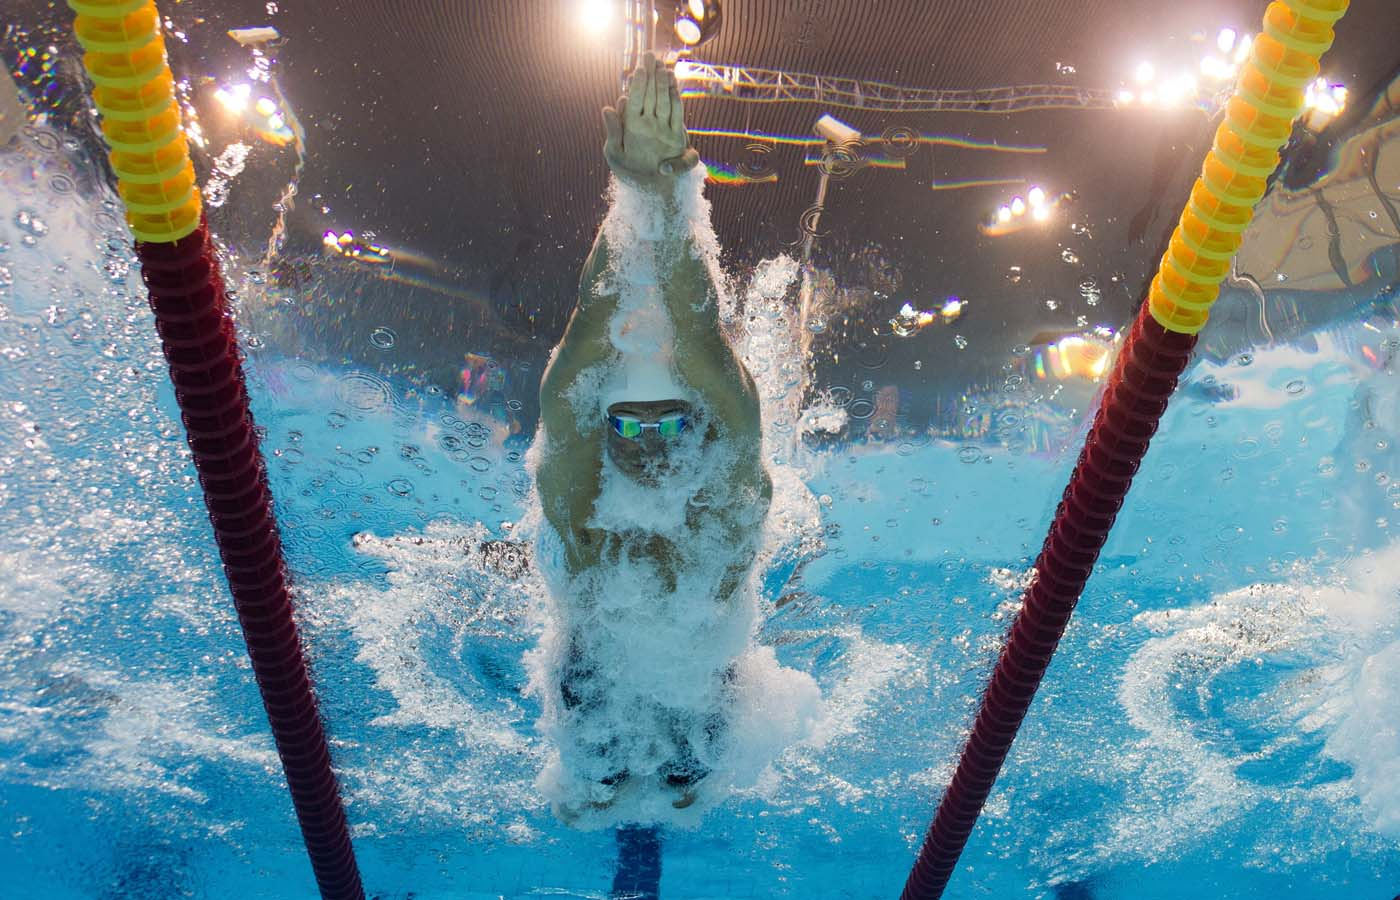 underwater photography at the 2012 london olympics